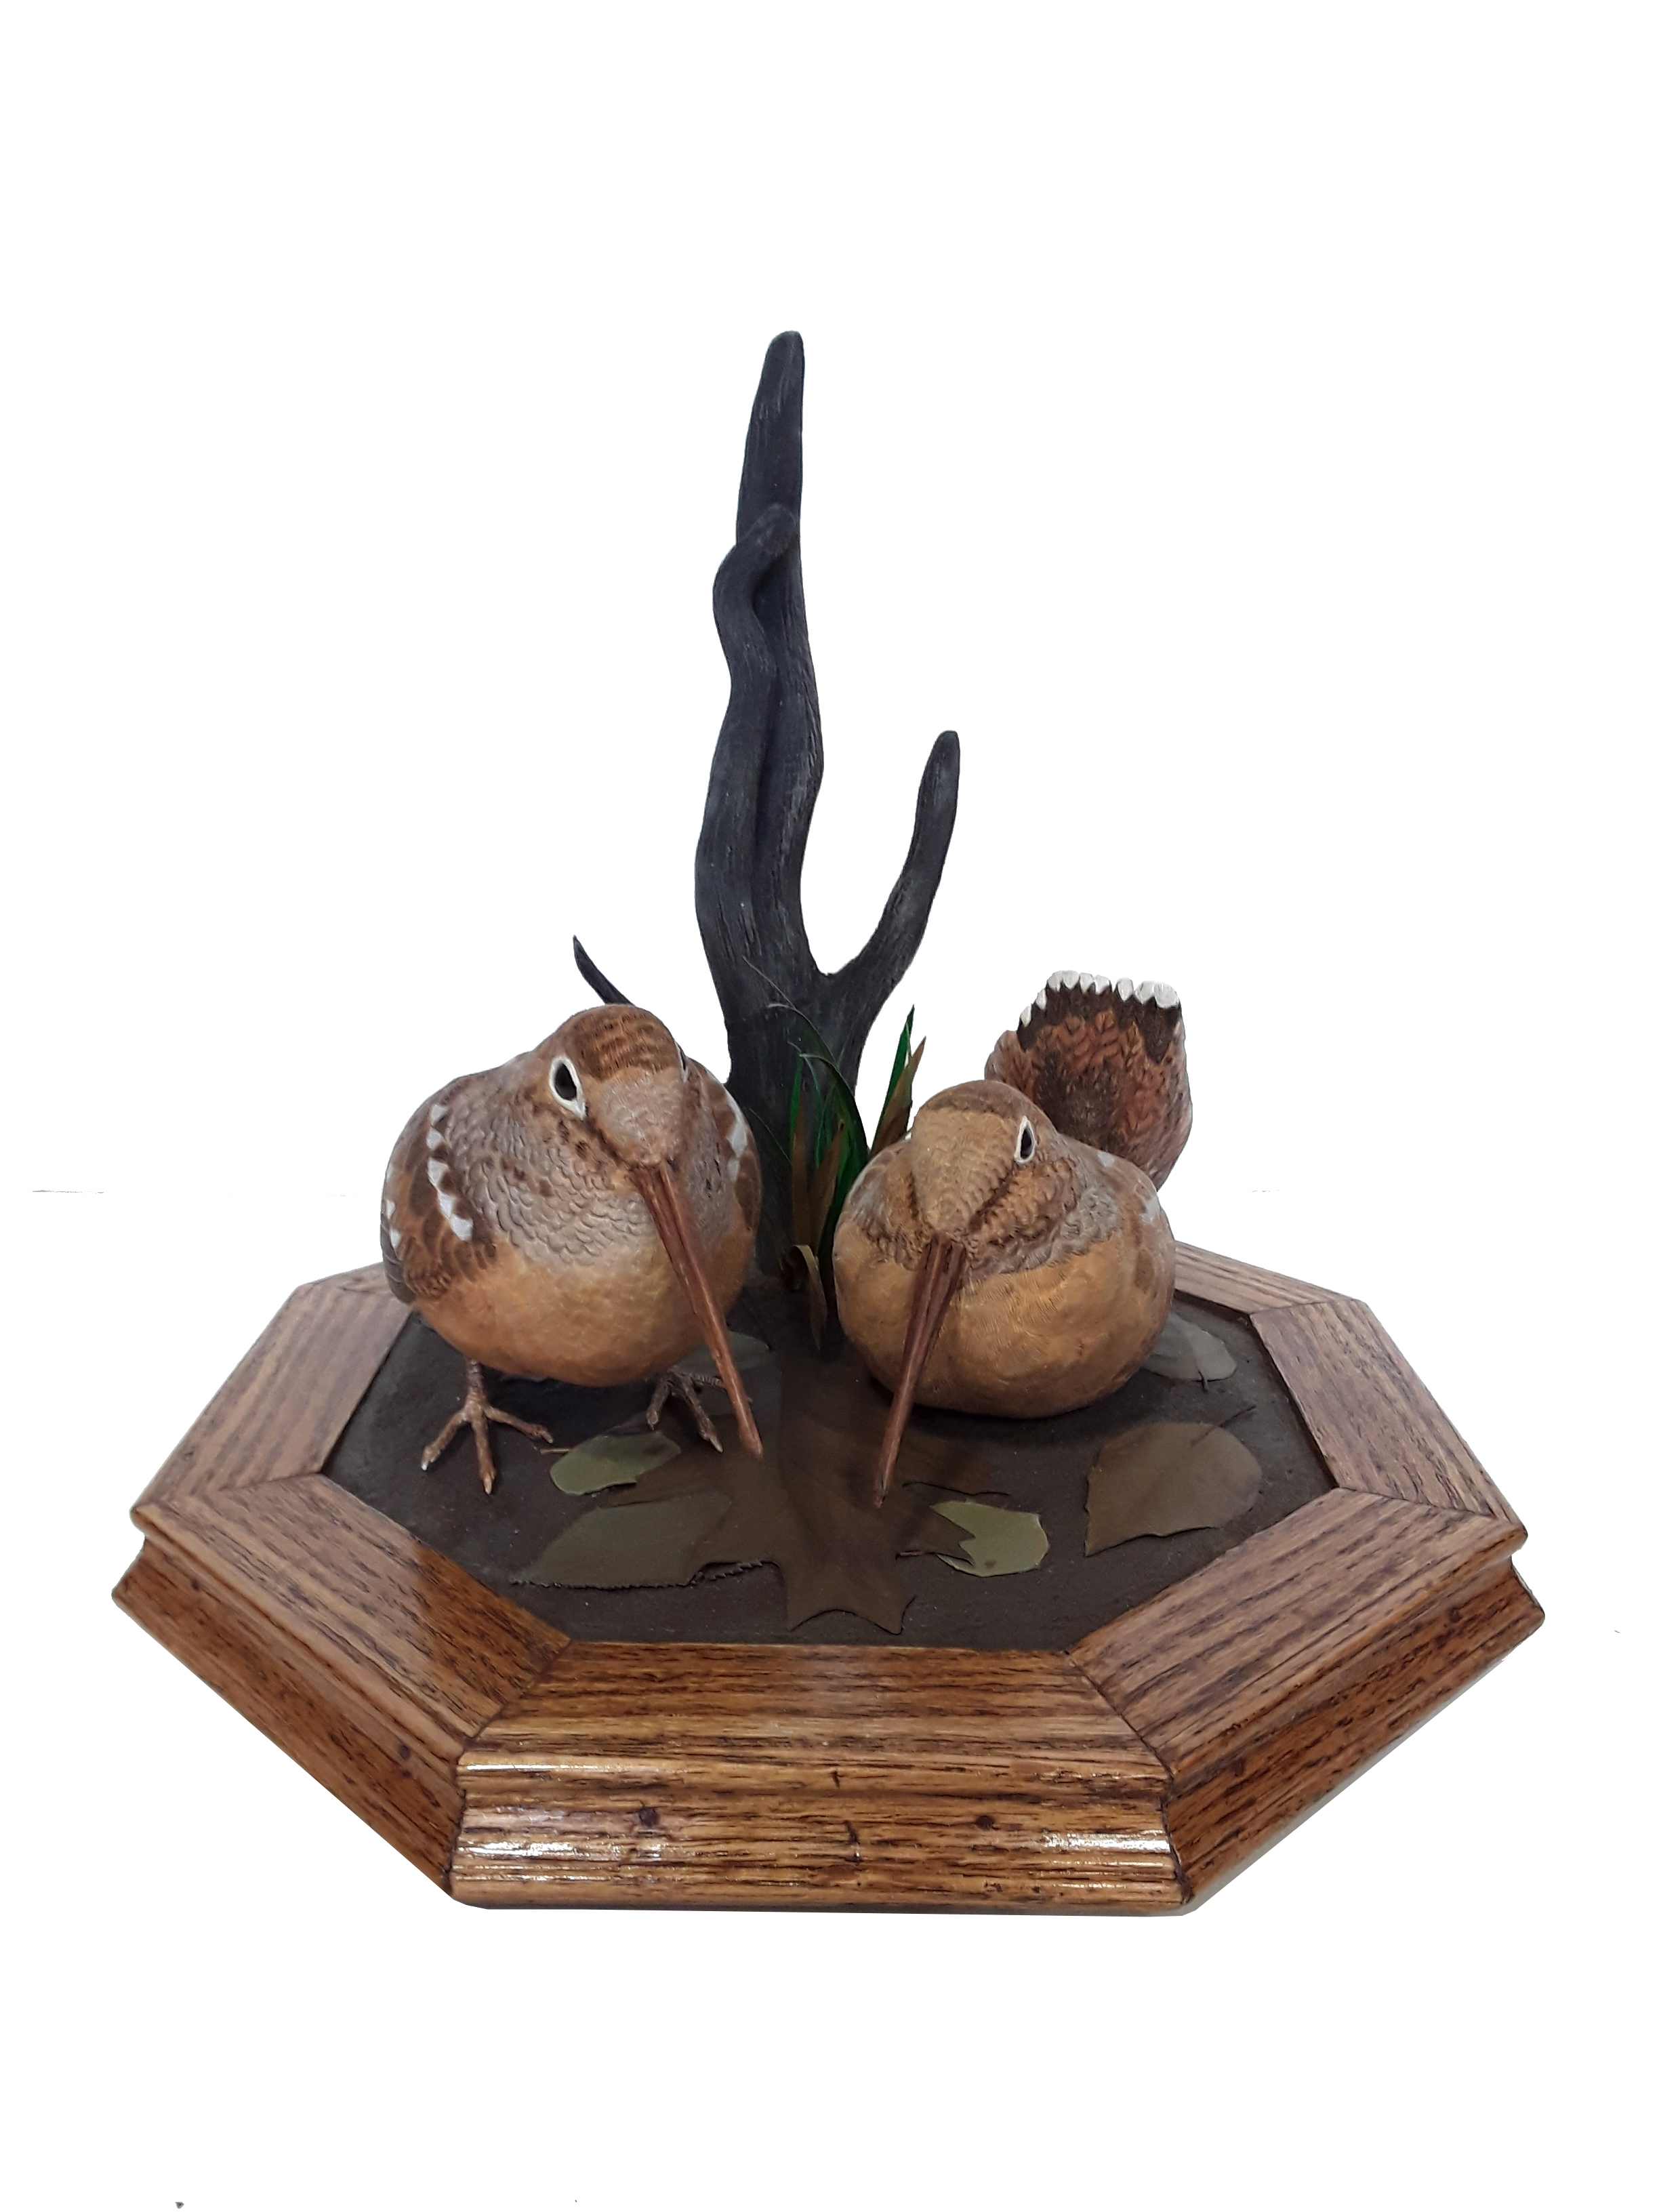 Tony Bendig's Carved Woodcocks Carving